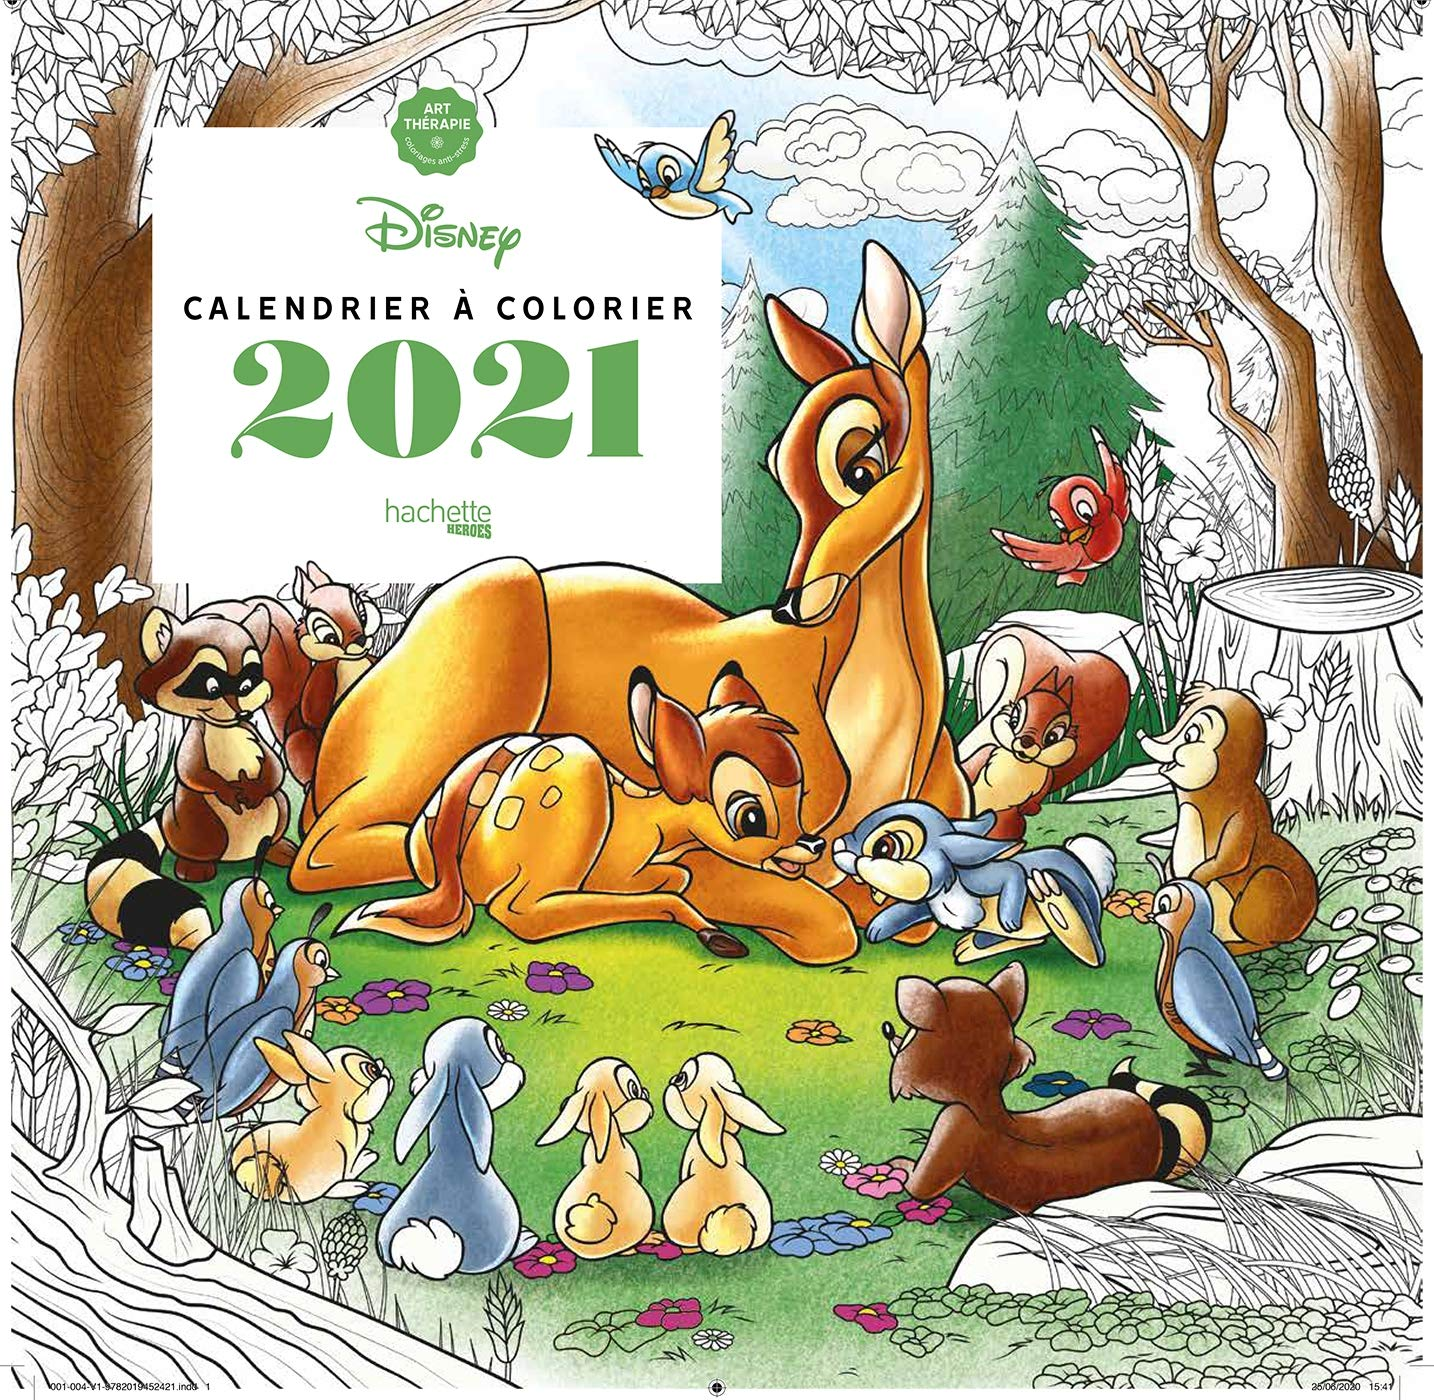 Calendrier Art thérapie Disney à colorier 2021 (Heroes) (French